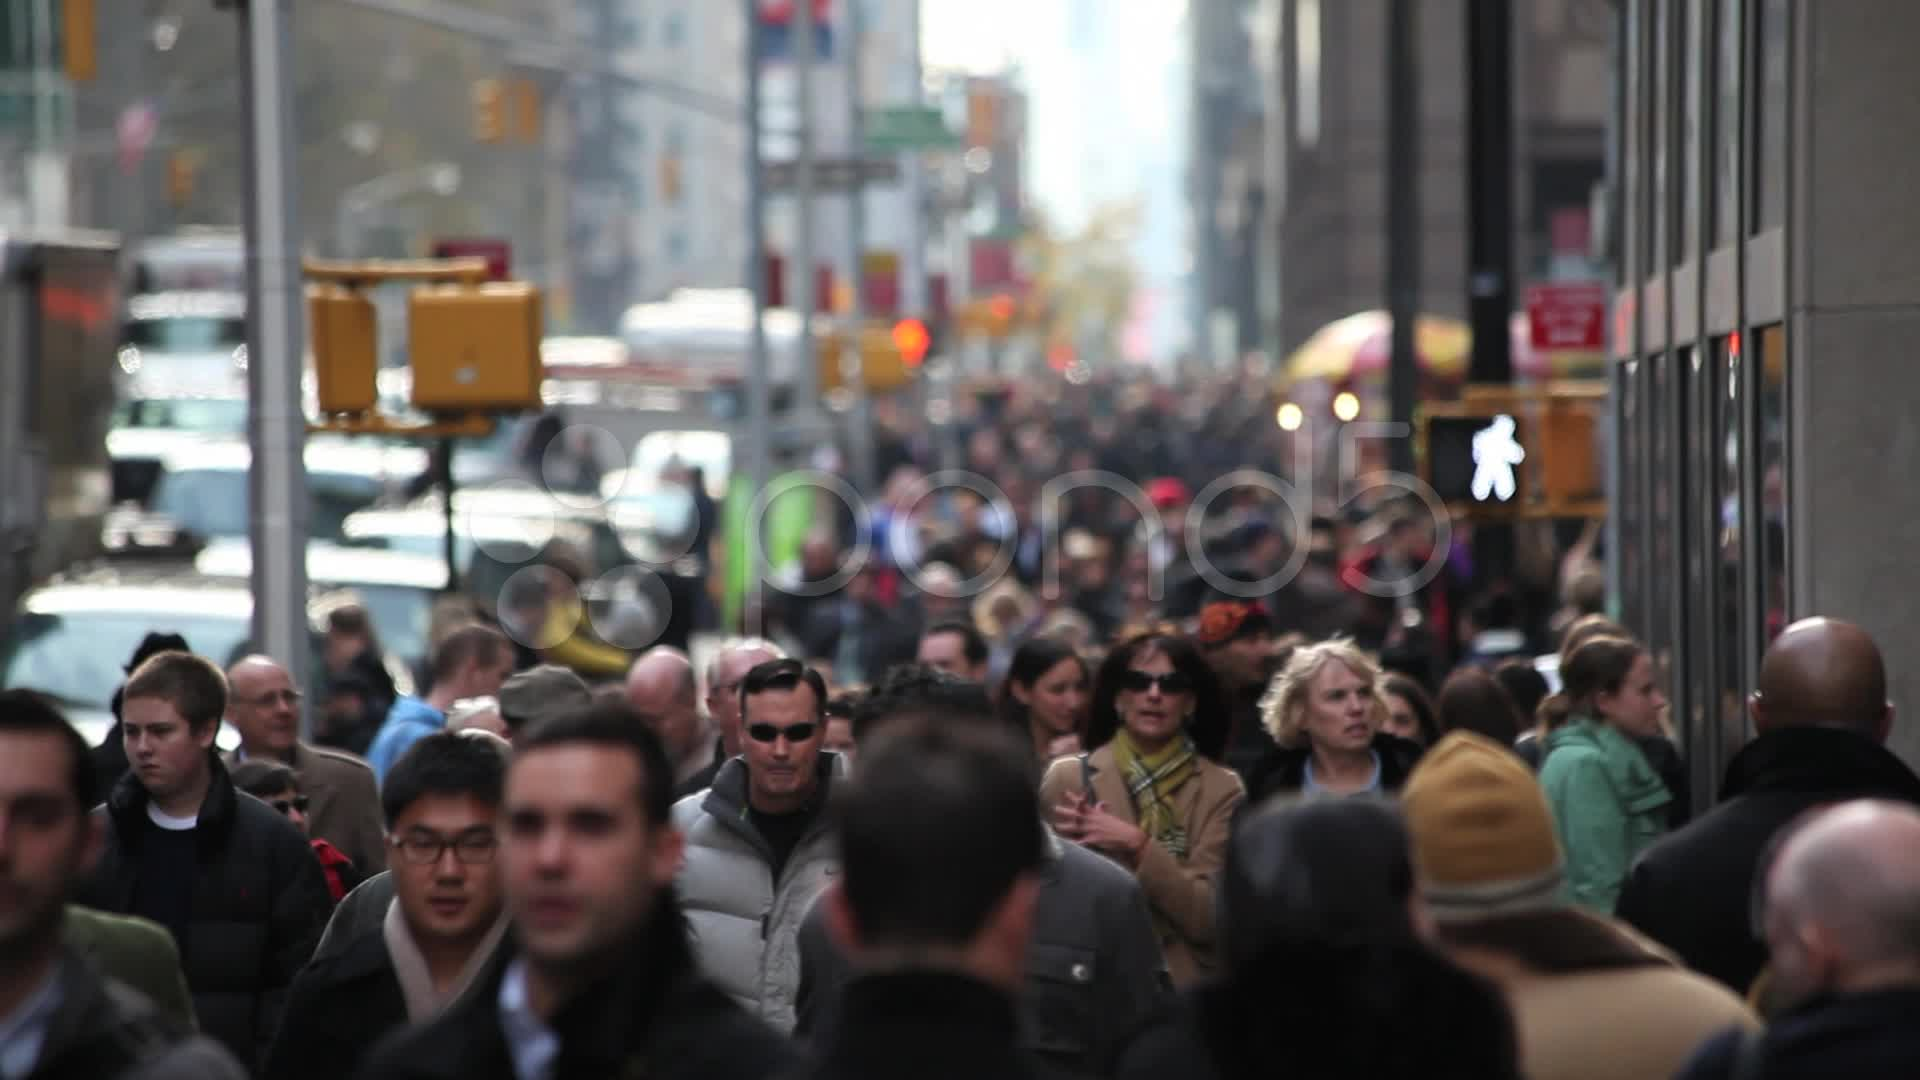 Crowd walking sidewalk city street people new york city ...